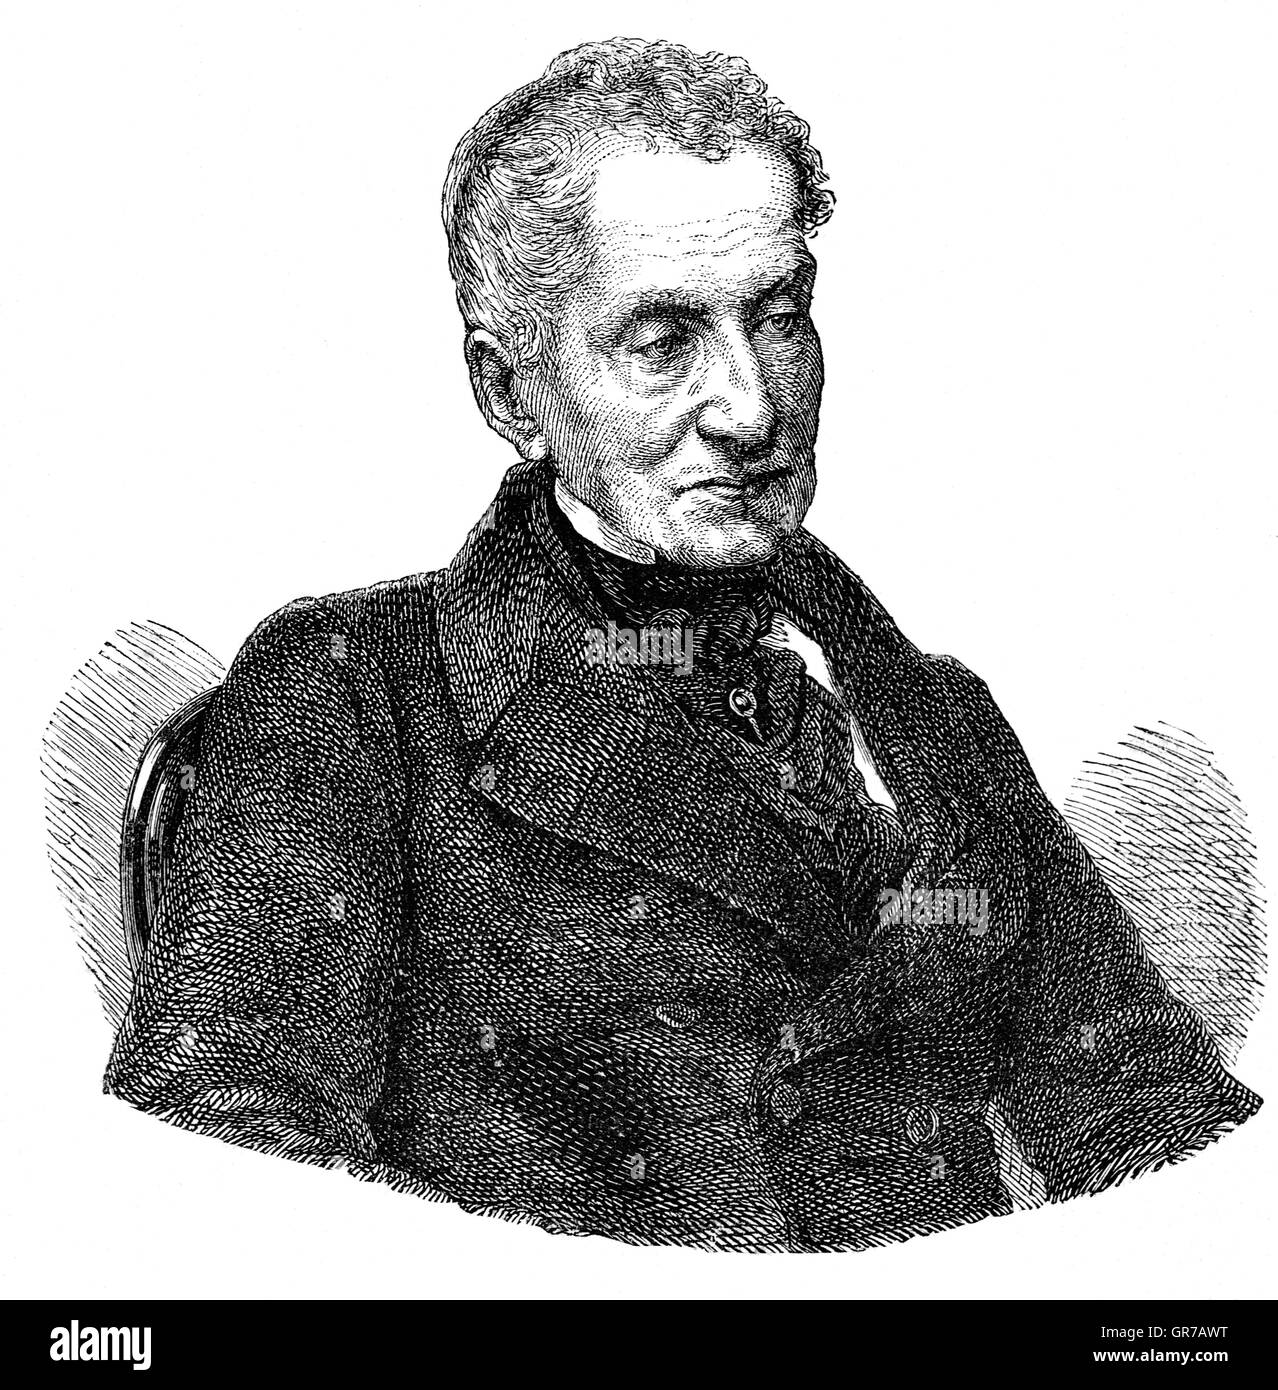 Prince Klemens Wenzel von Metternich (1773 – 1859) was a politician, statesman and one of the most important diplomats - Stock Image